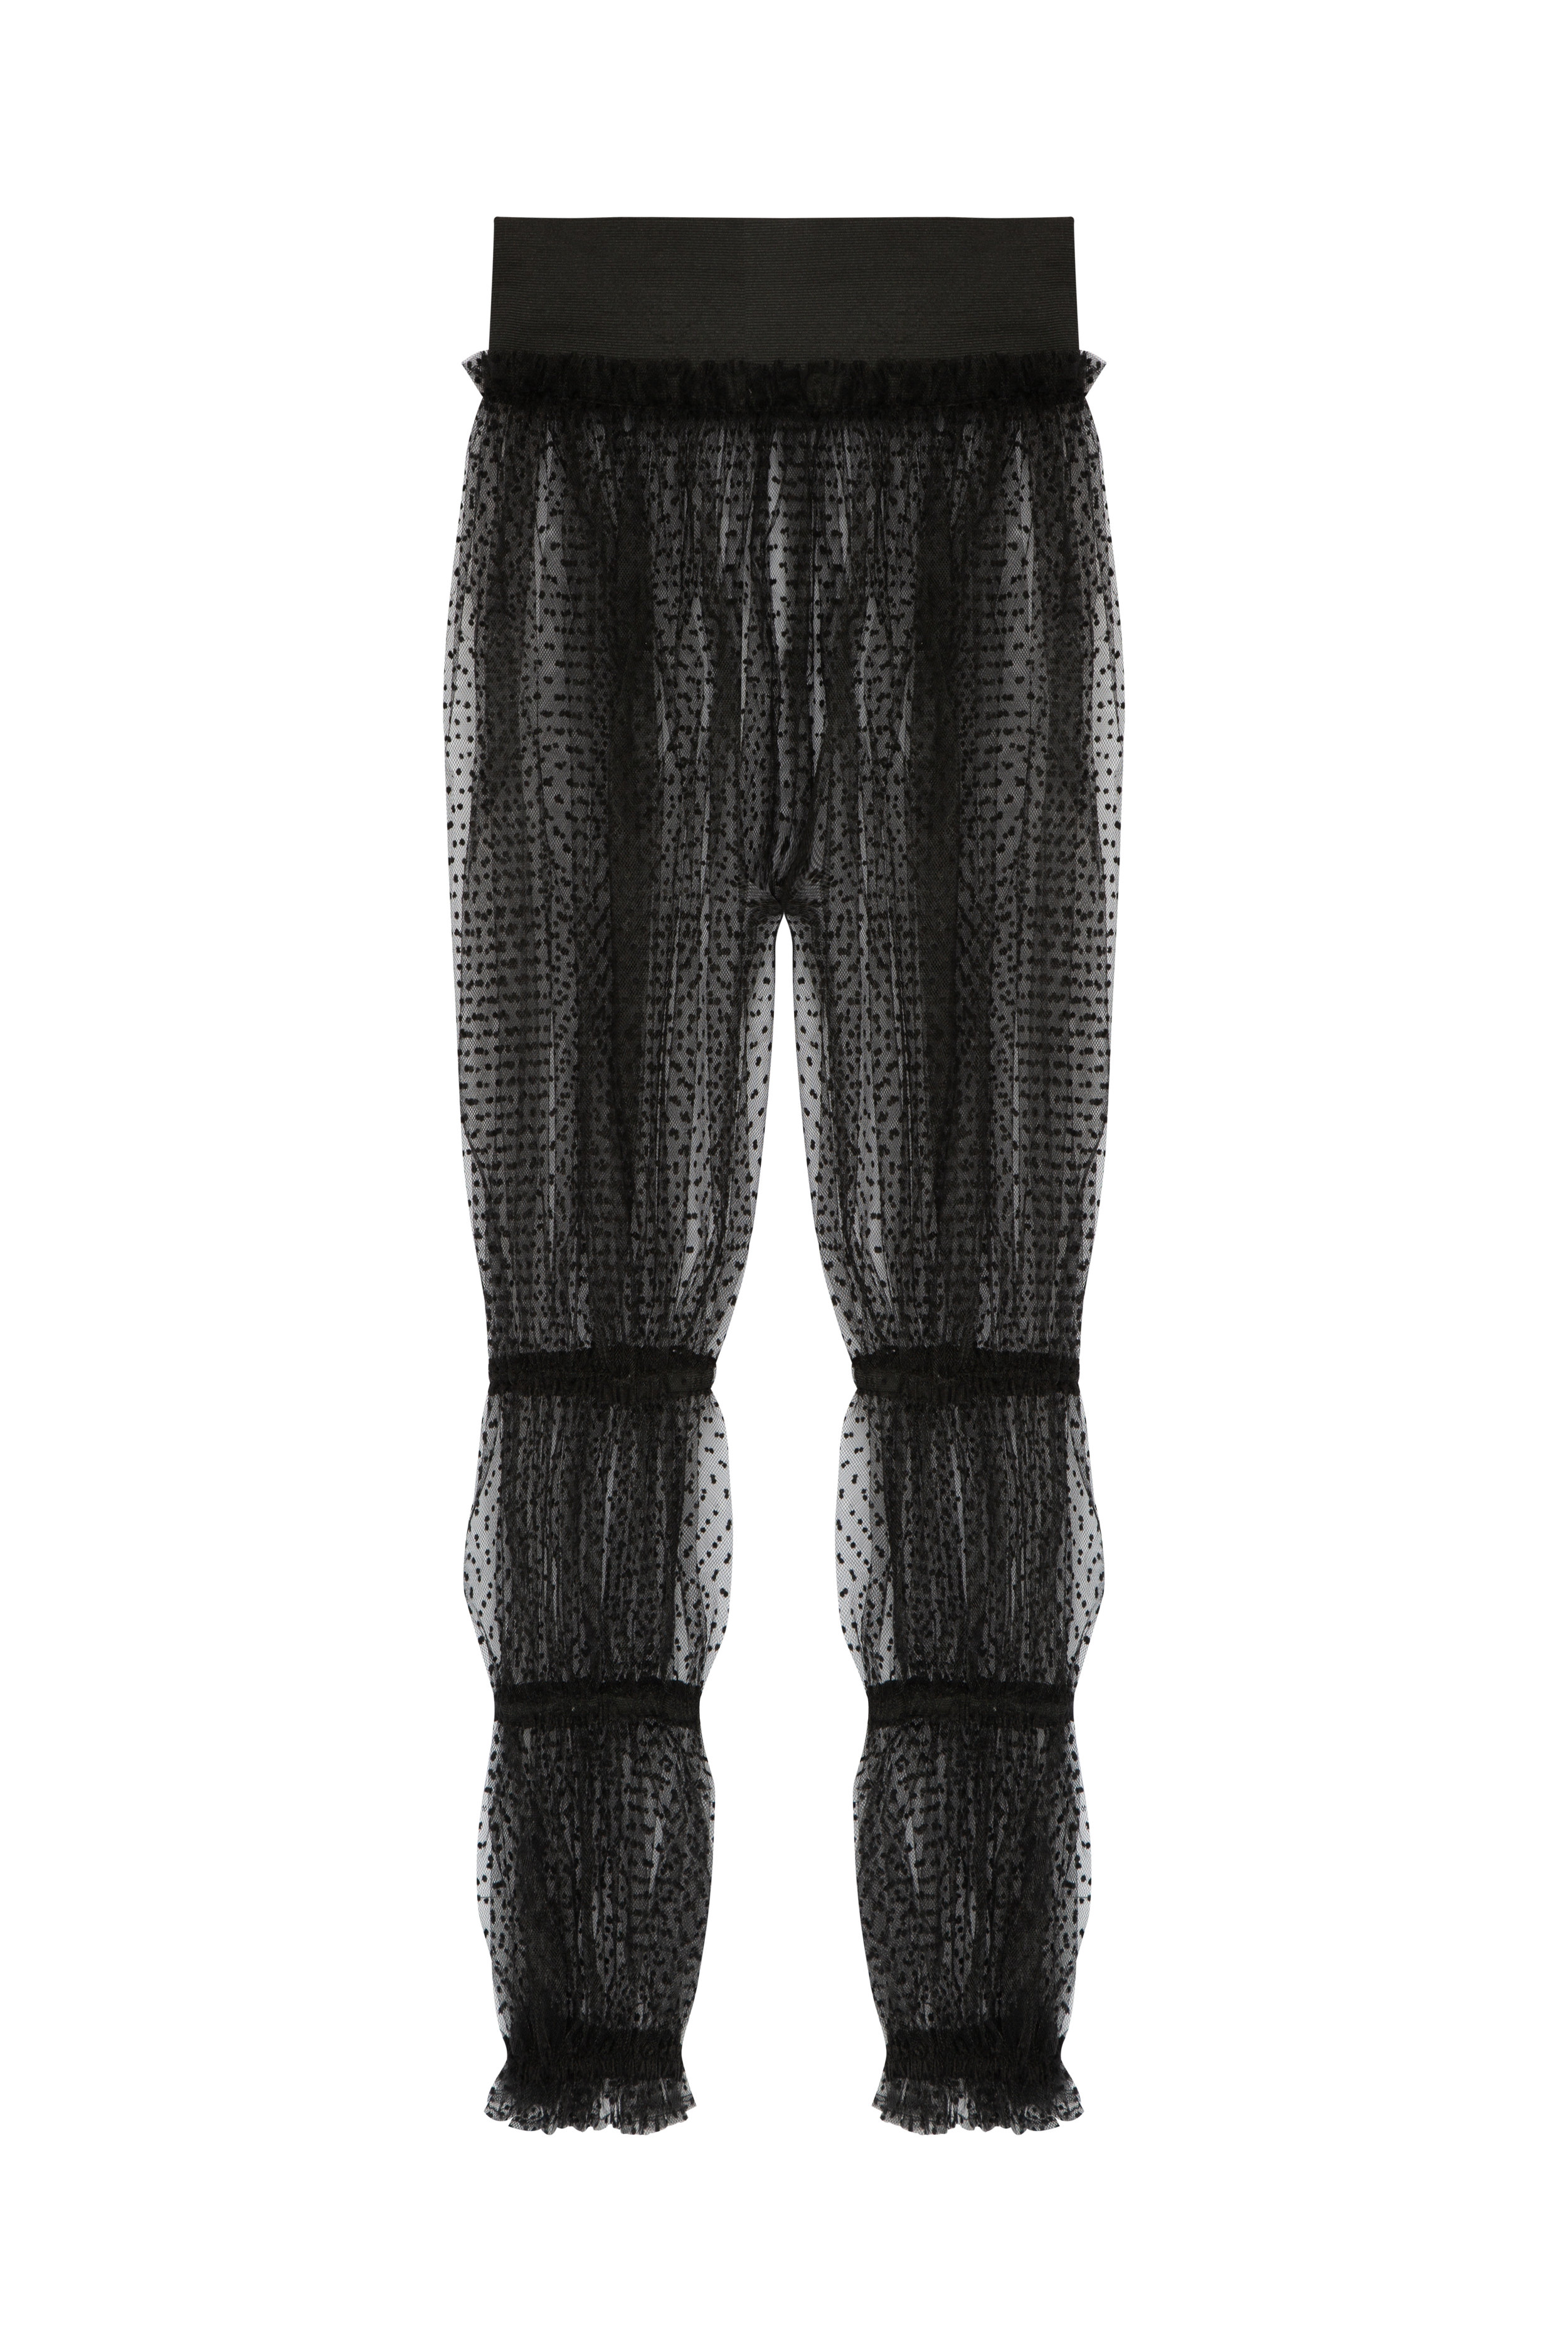 COMPLETE THE LOOK - Demi Pant in Tulle USD 300